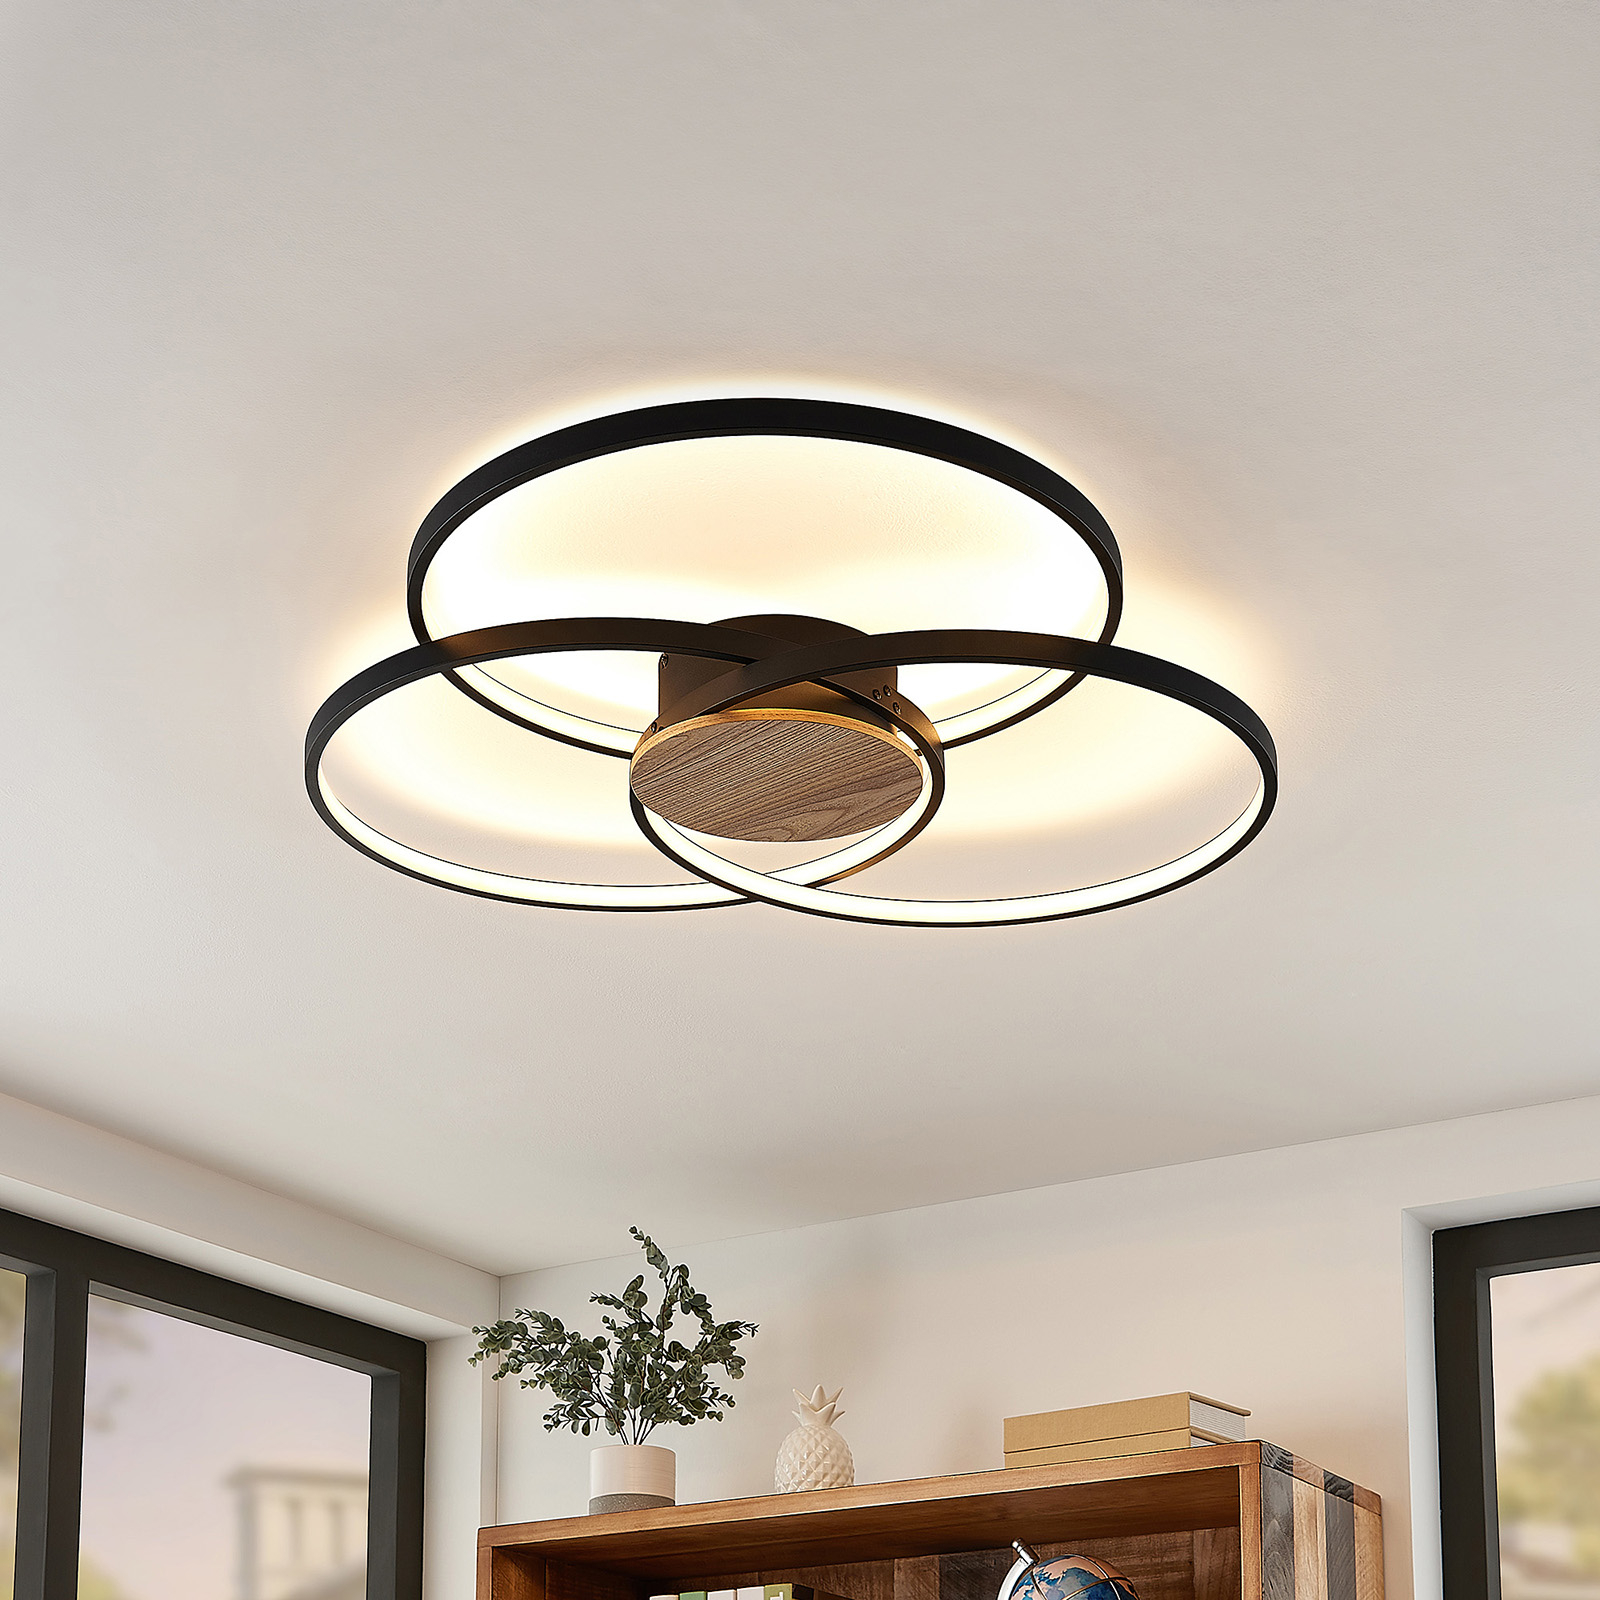 Lindby Nerwin plafón LED, atenuable, negro